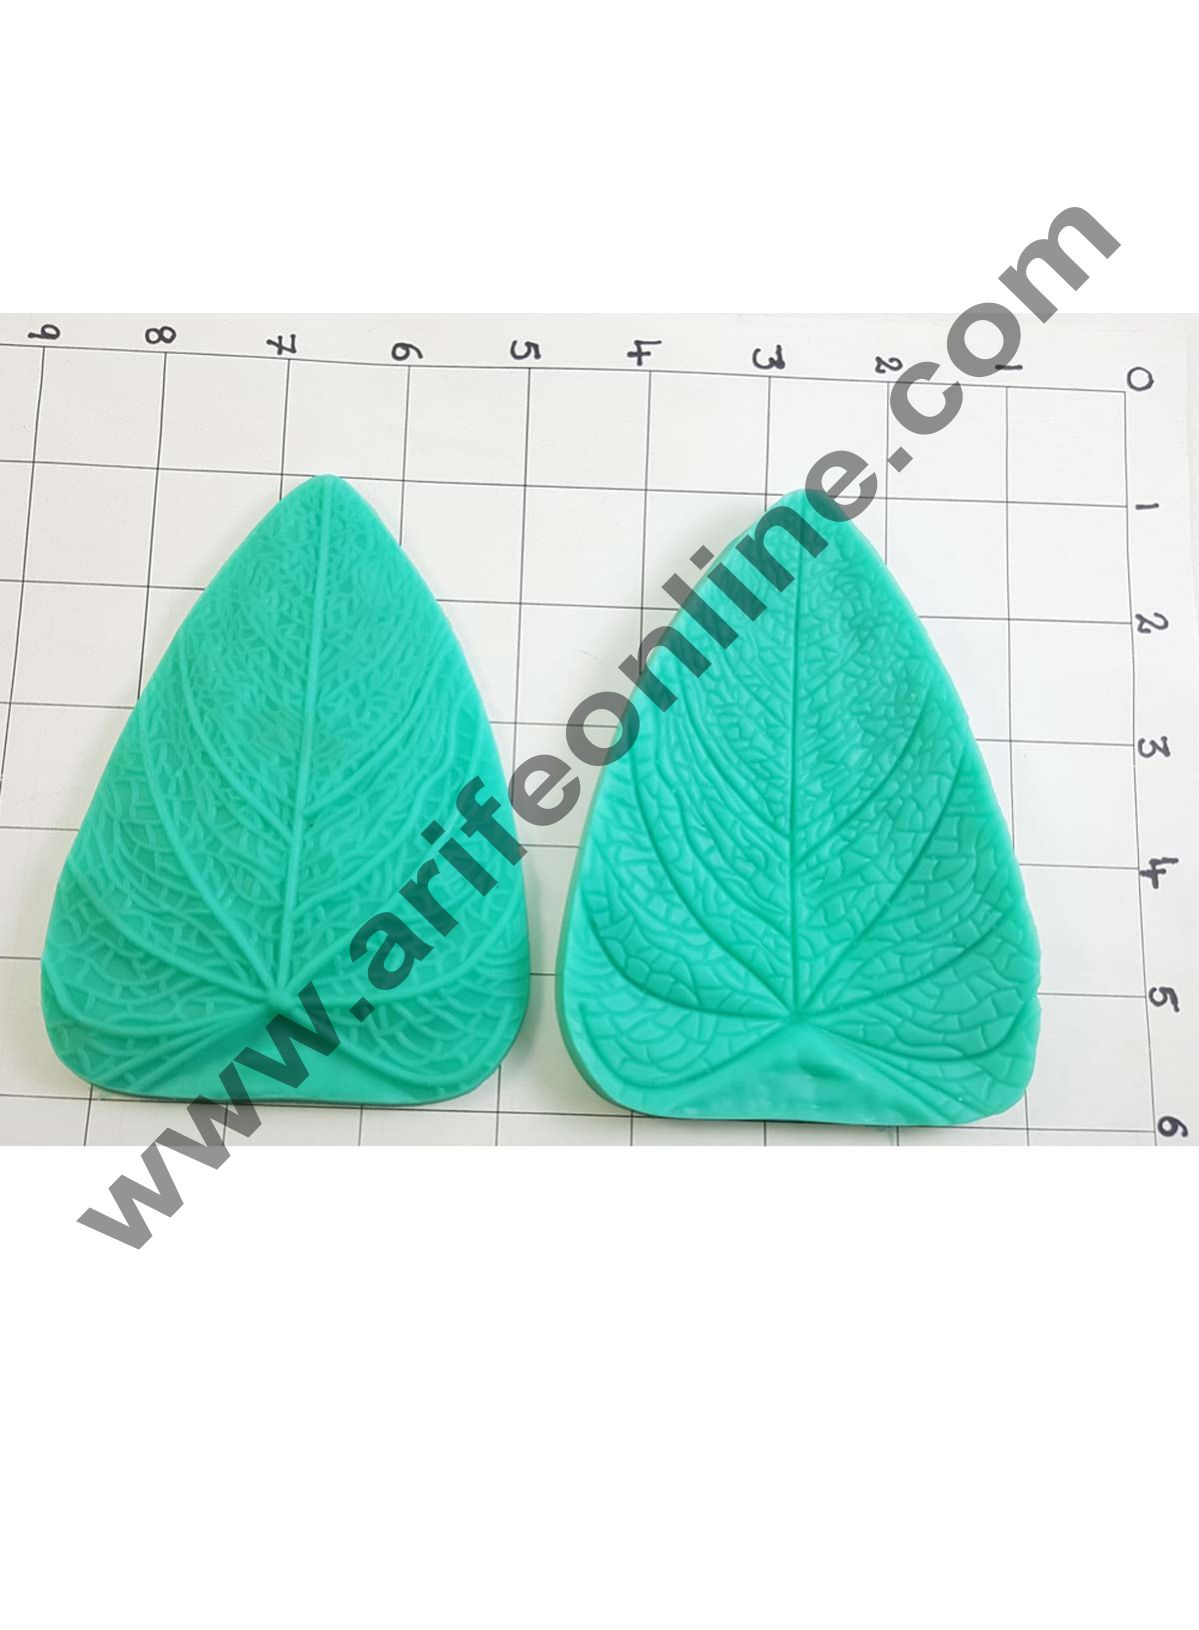 Cake Decor Silicon 1Pcs Big Veiners Leaf Shape Fondant Clay Marzipan Cake Decoration Mould